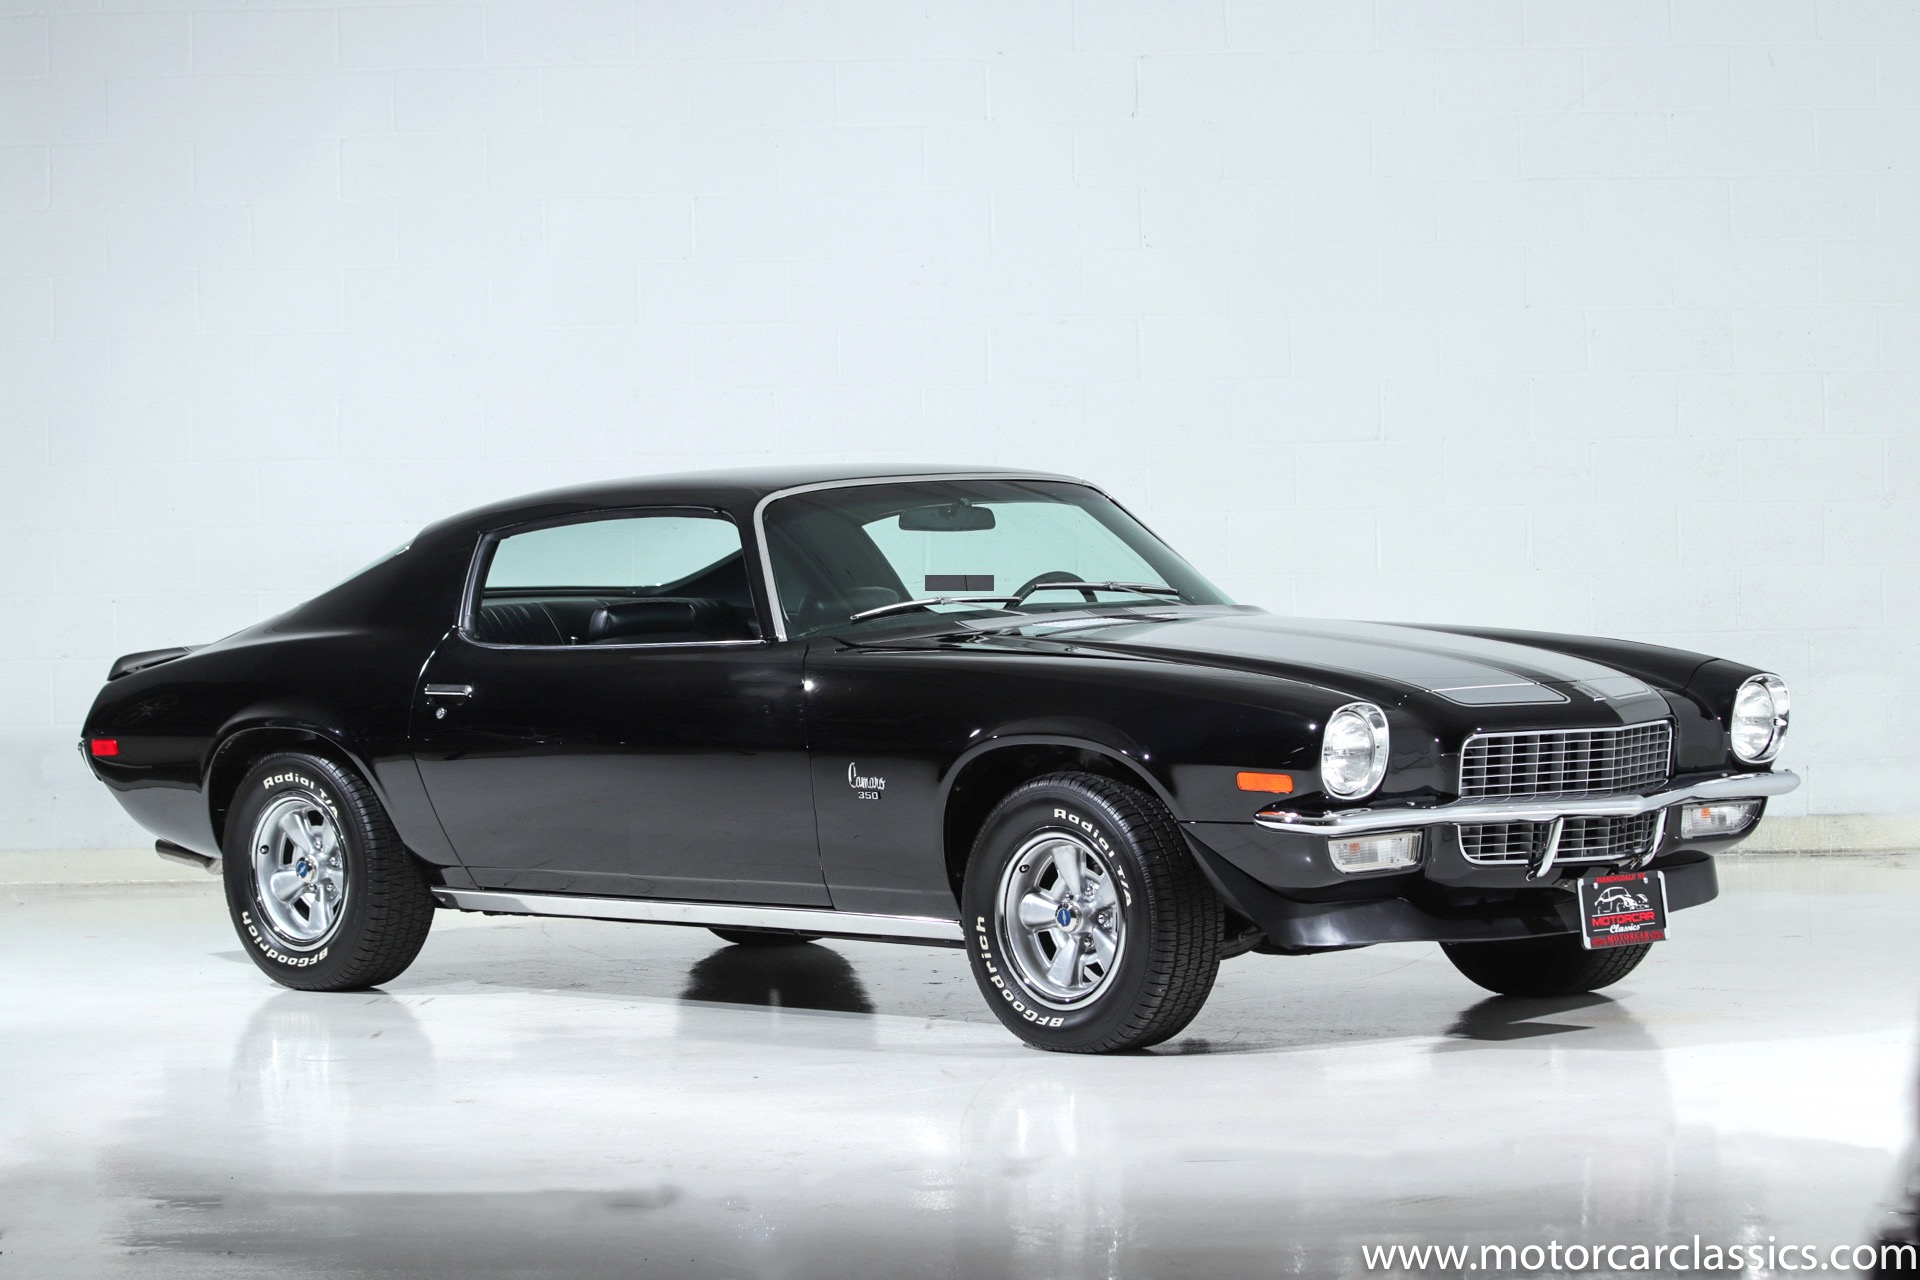 Used 1970 Chevrolet Camaro For Sale ($49,900) | Motorcar